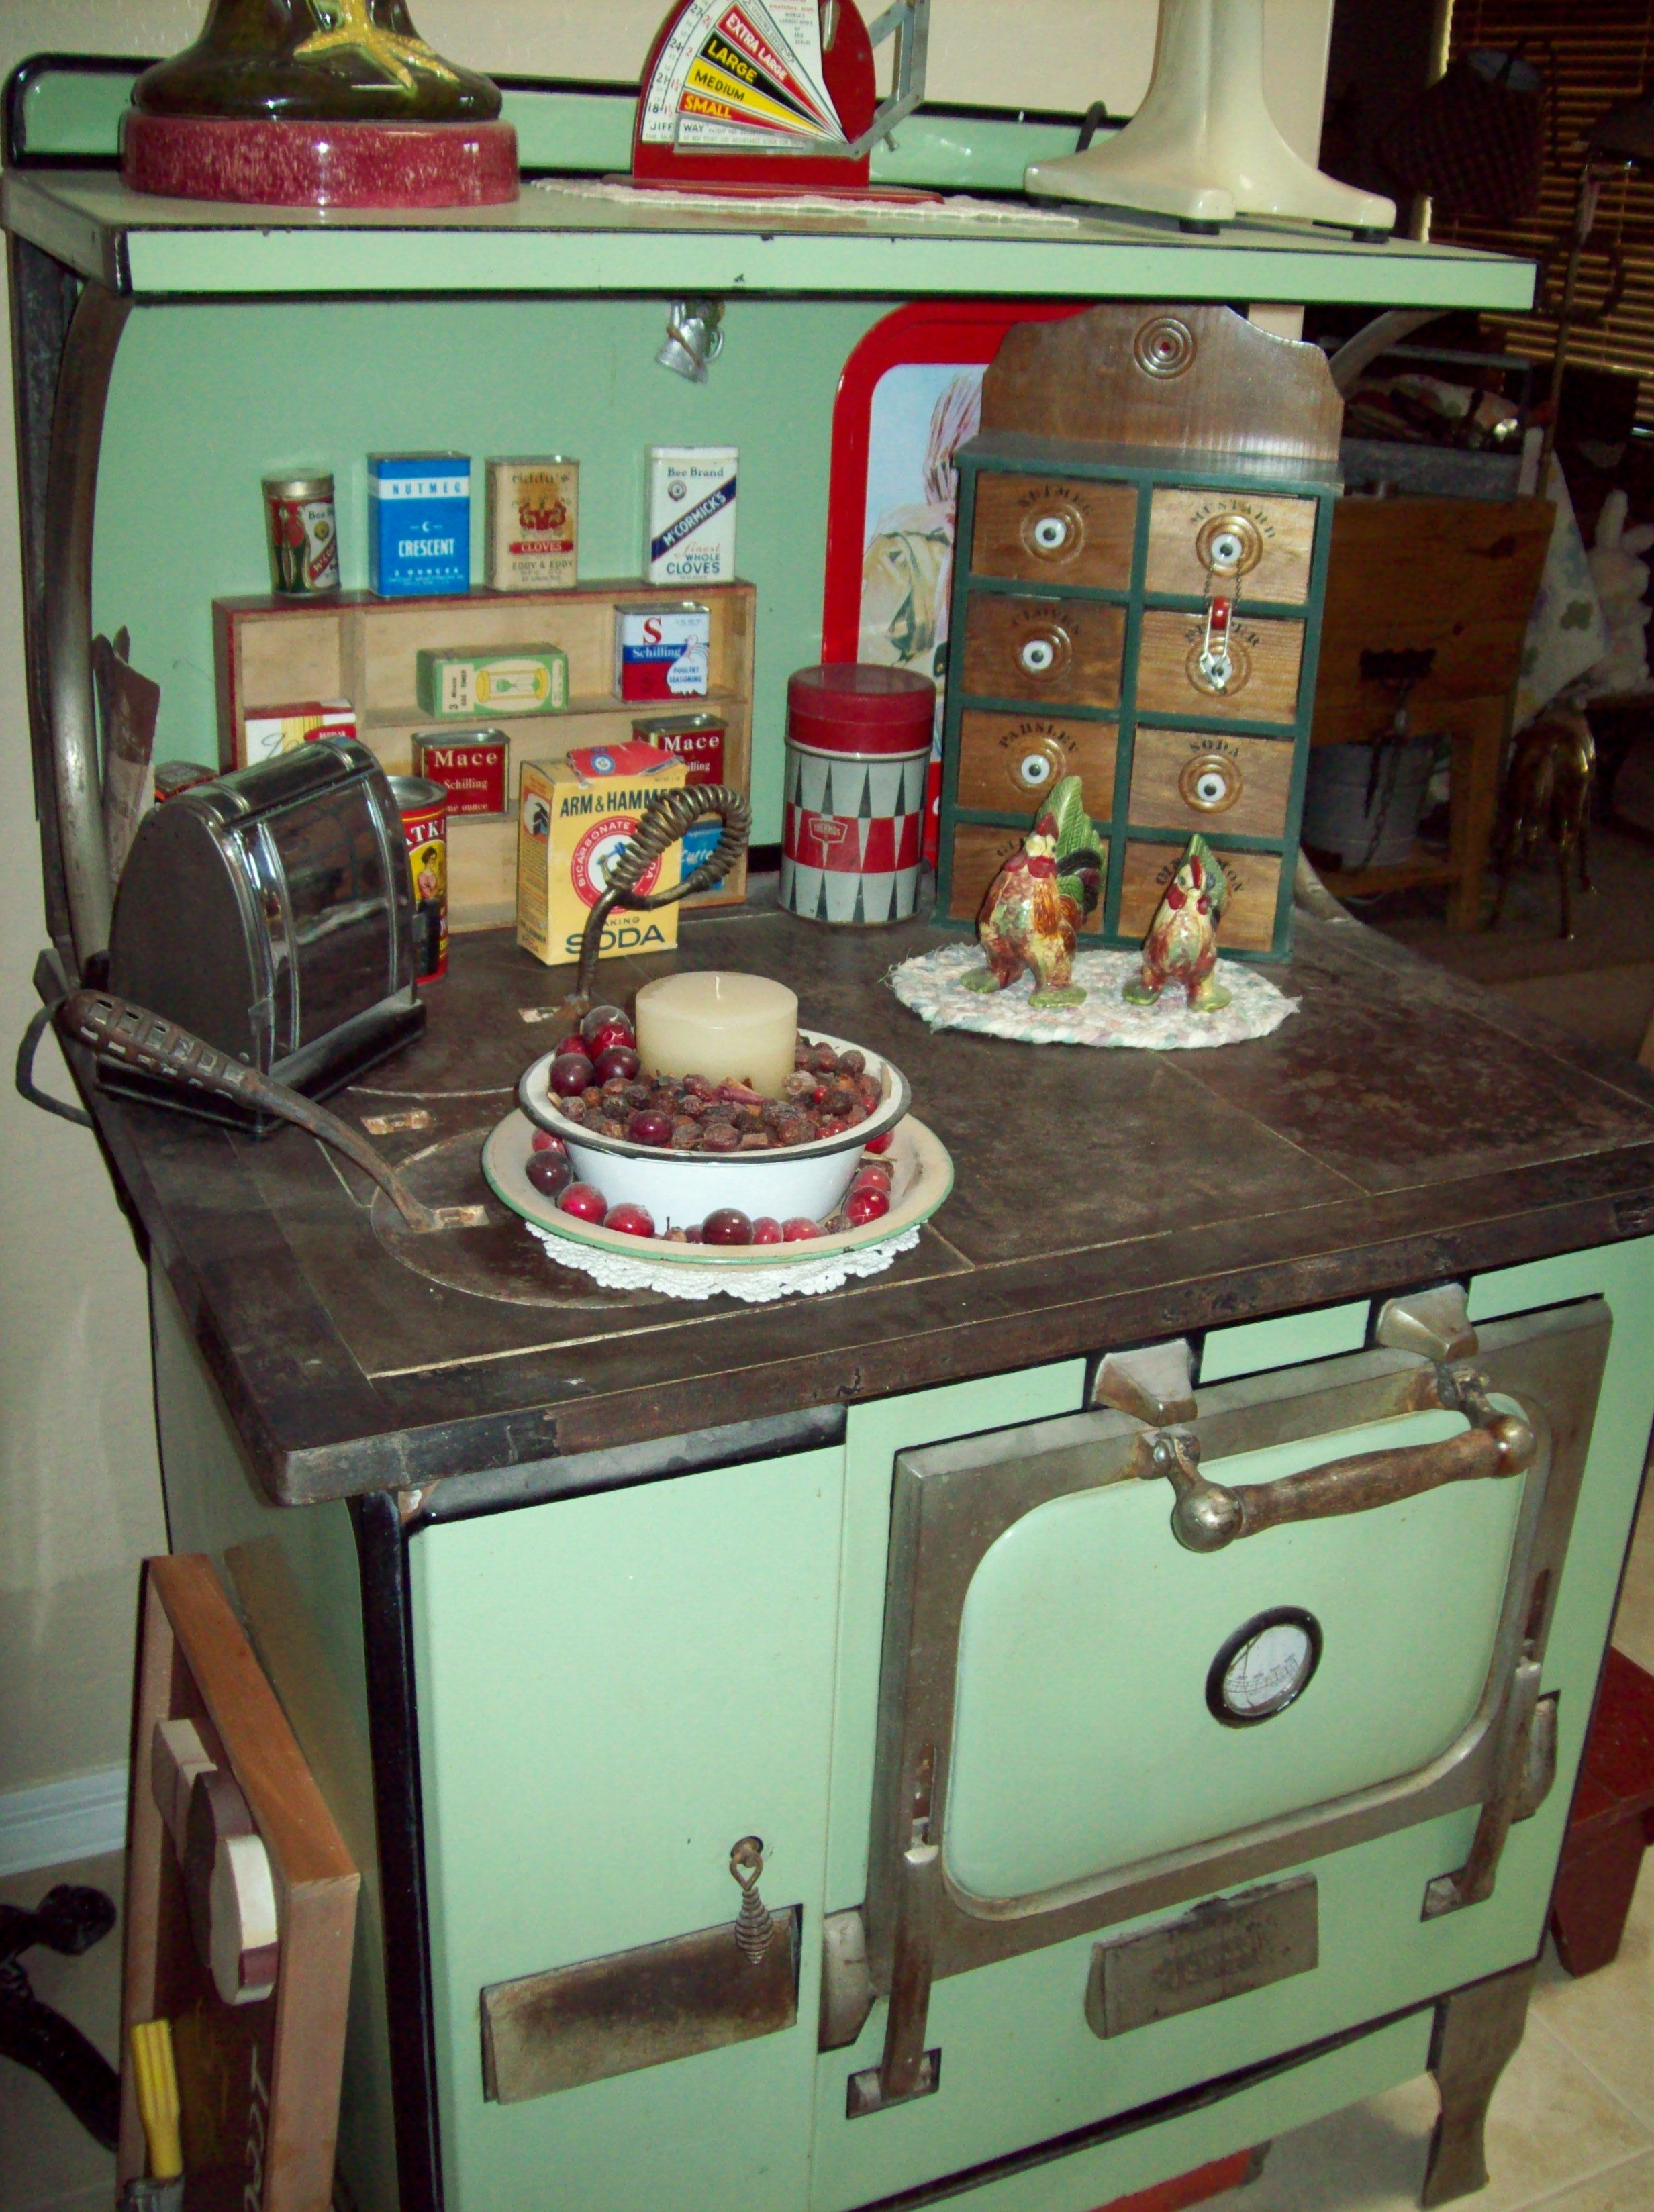 Old wood cook stove old woodstoves pinterest estufa - Estufas de lena antiguas ...